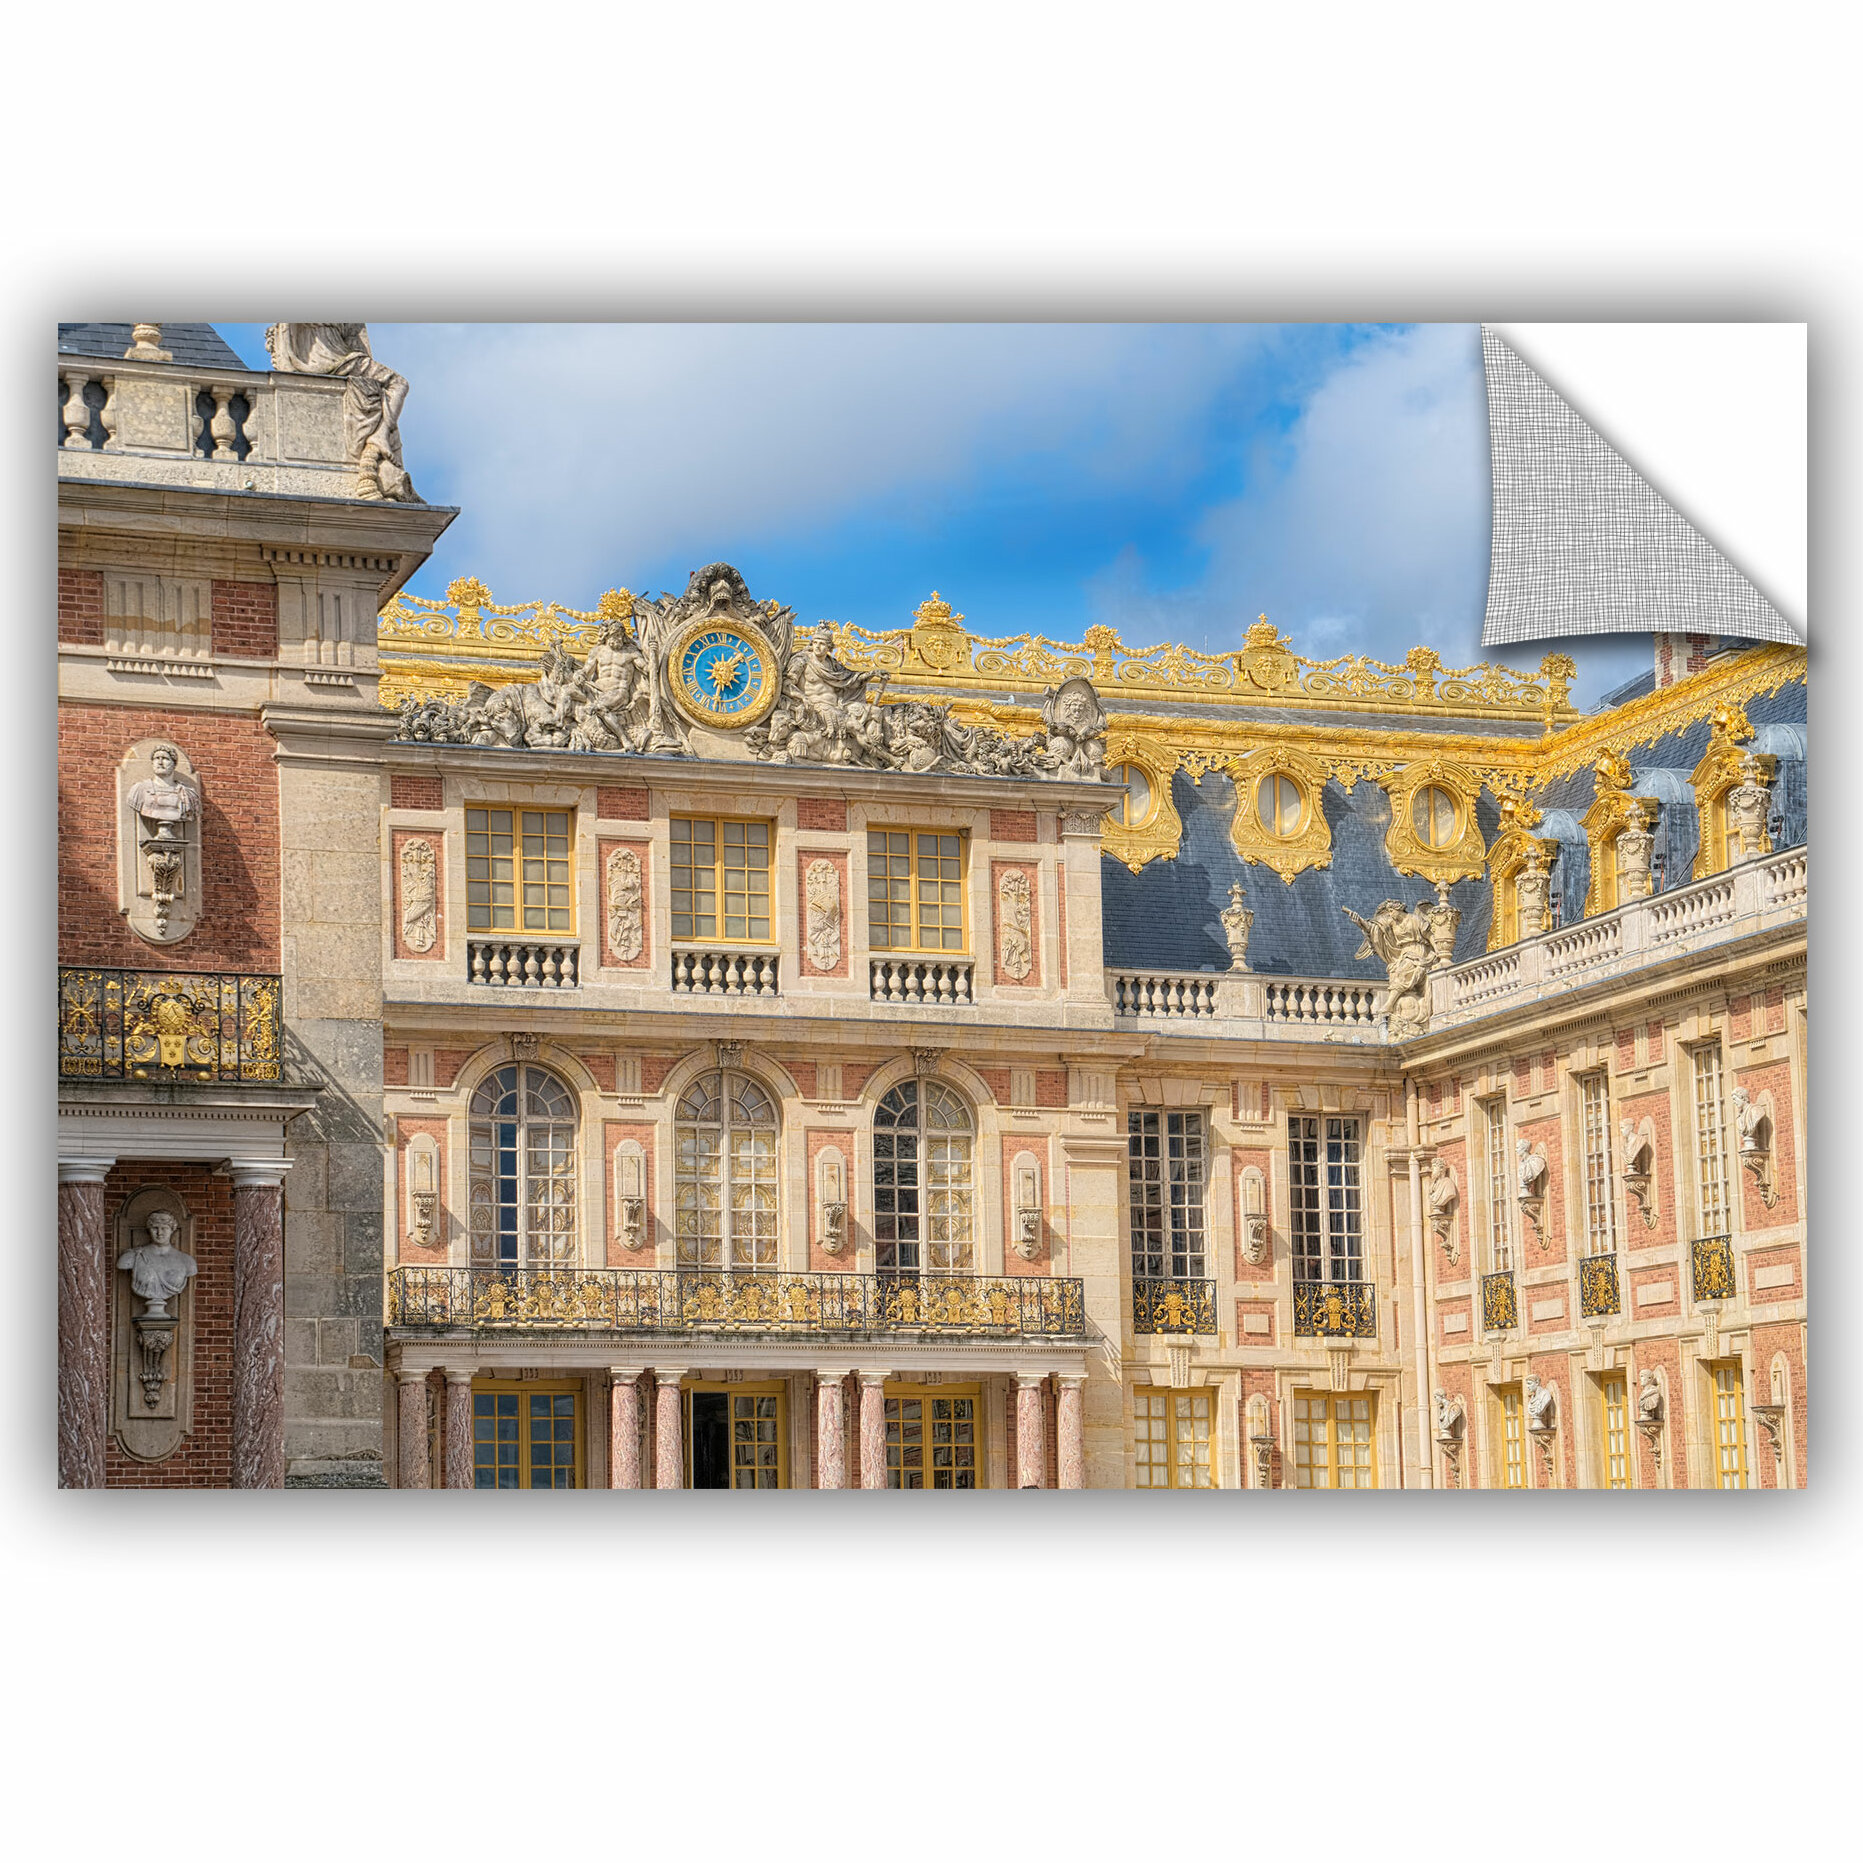 Ebern Designs Palace Of Versailles I Removable Wall Decal Wayfair